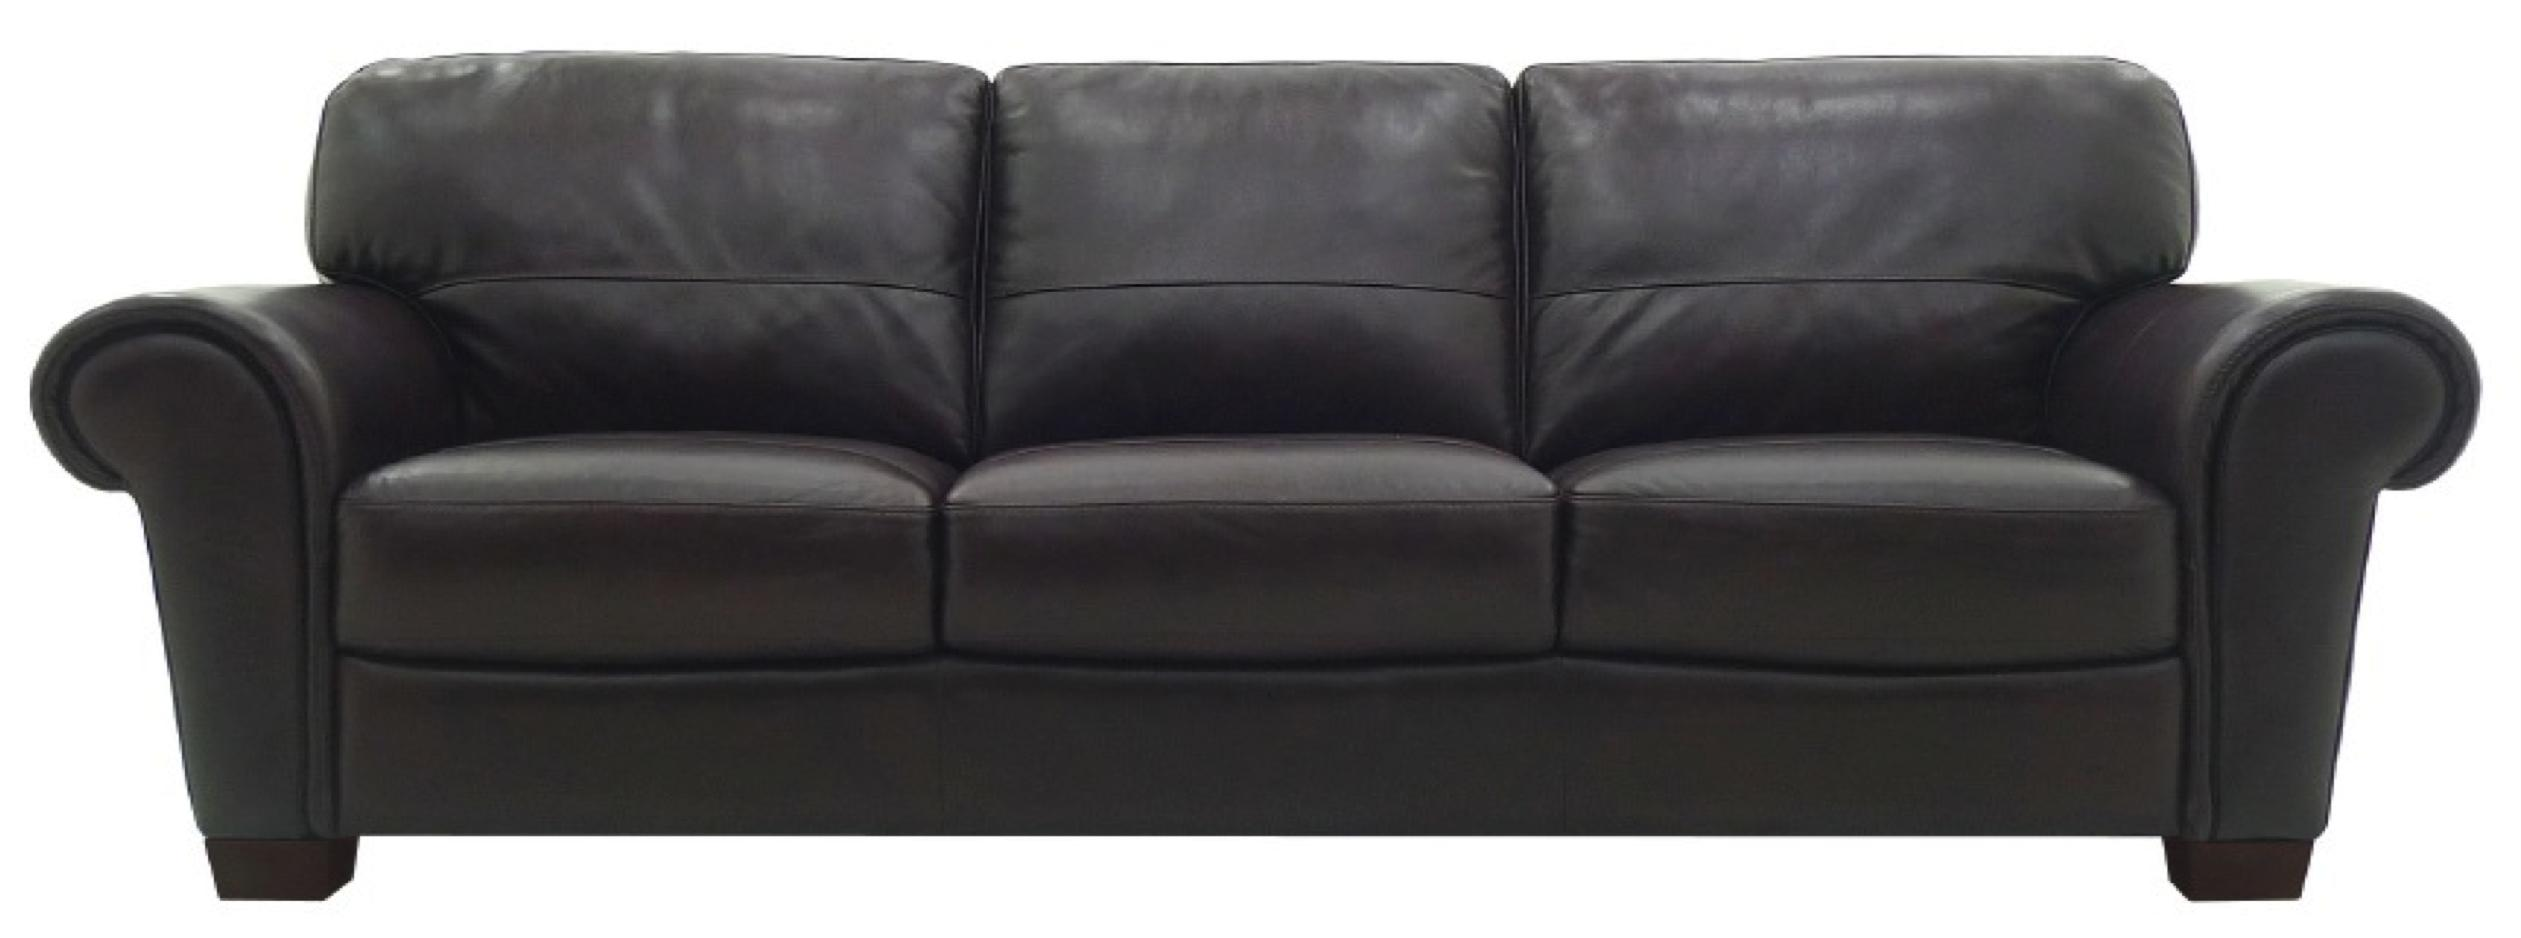 htl sofa range mid century style sectional 2274 contemporary leather with flared rolled arms